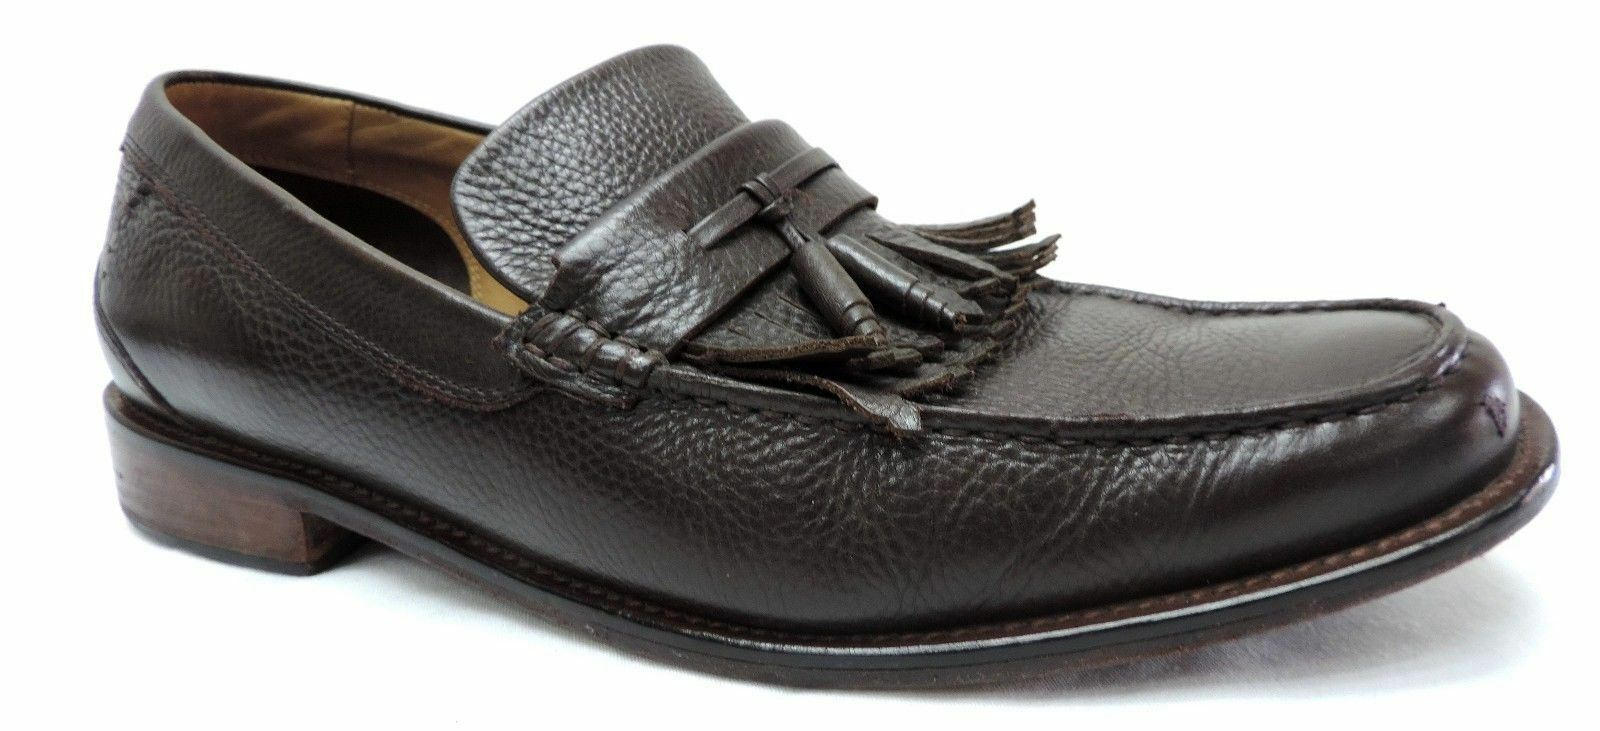 H.S. Trask men's 11 M brown leather loafers with tassels comfort shoes dress